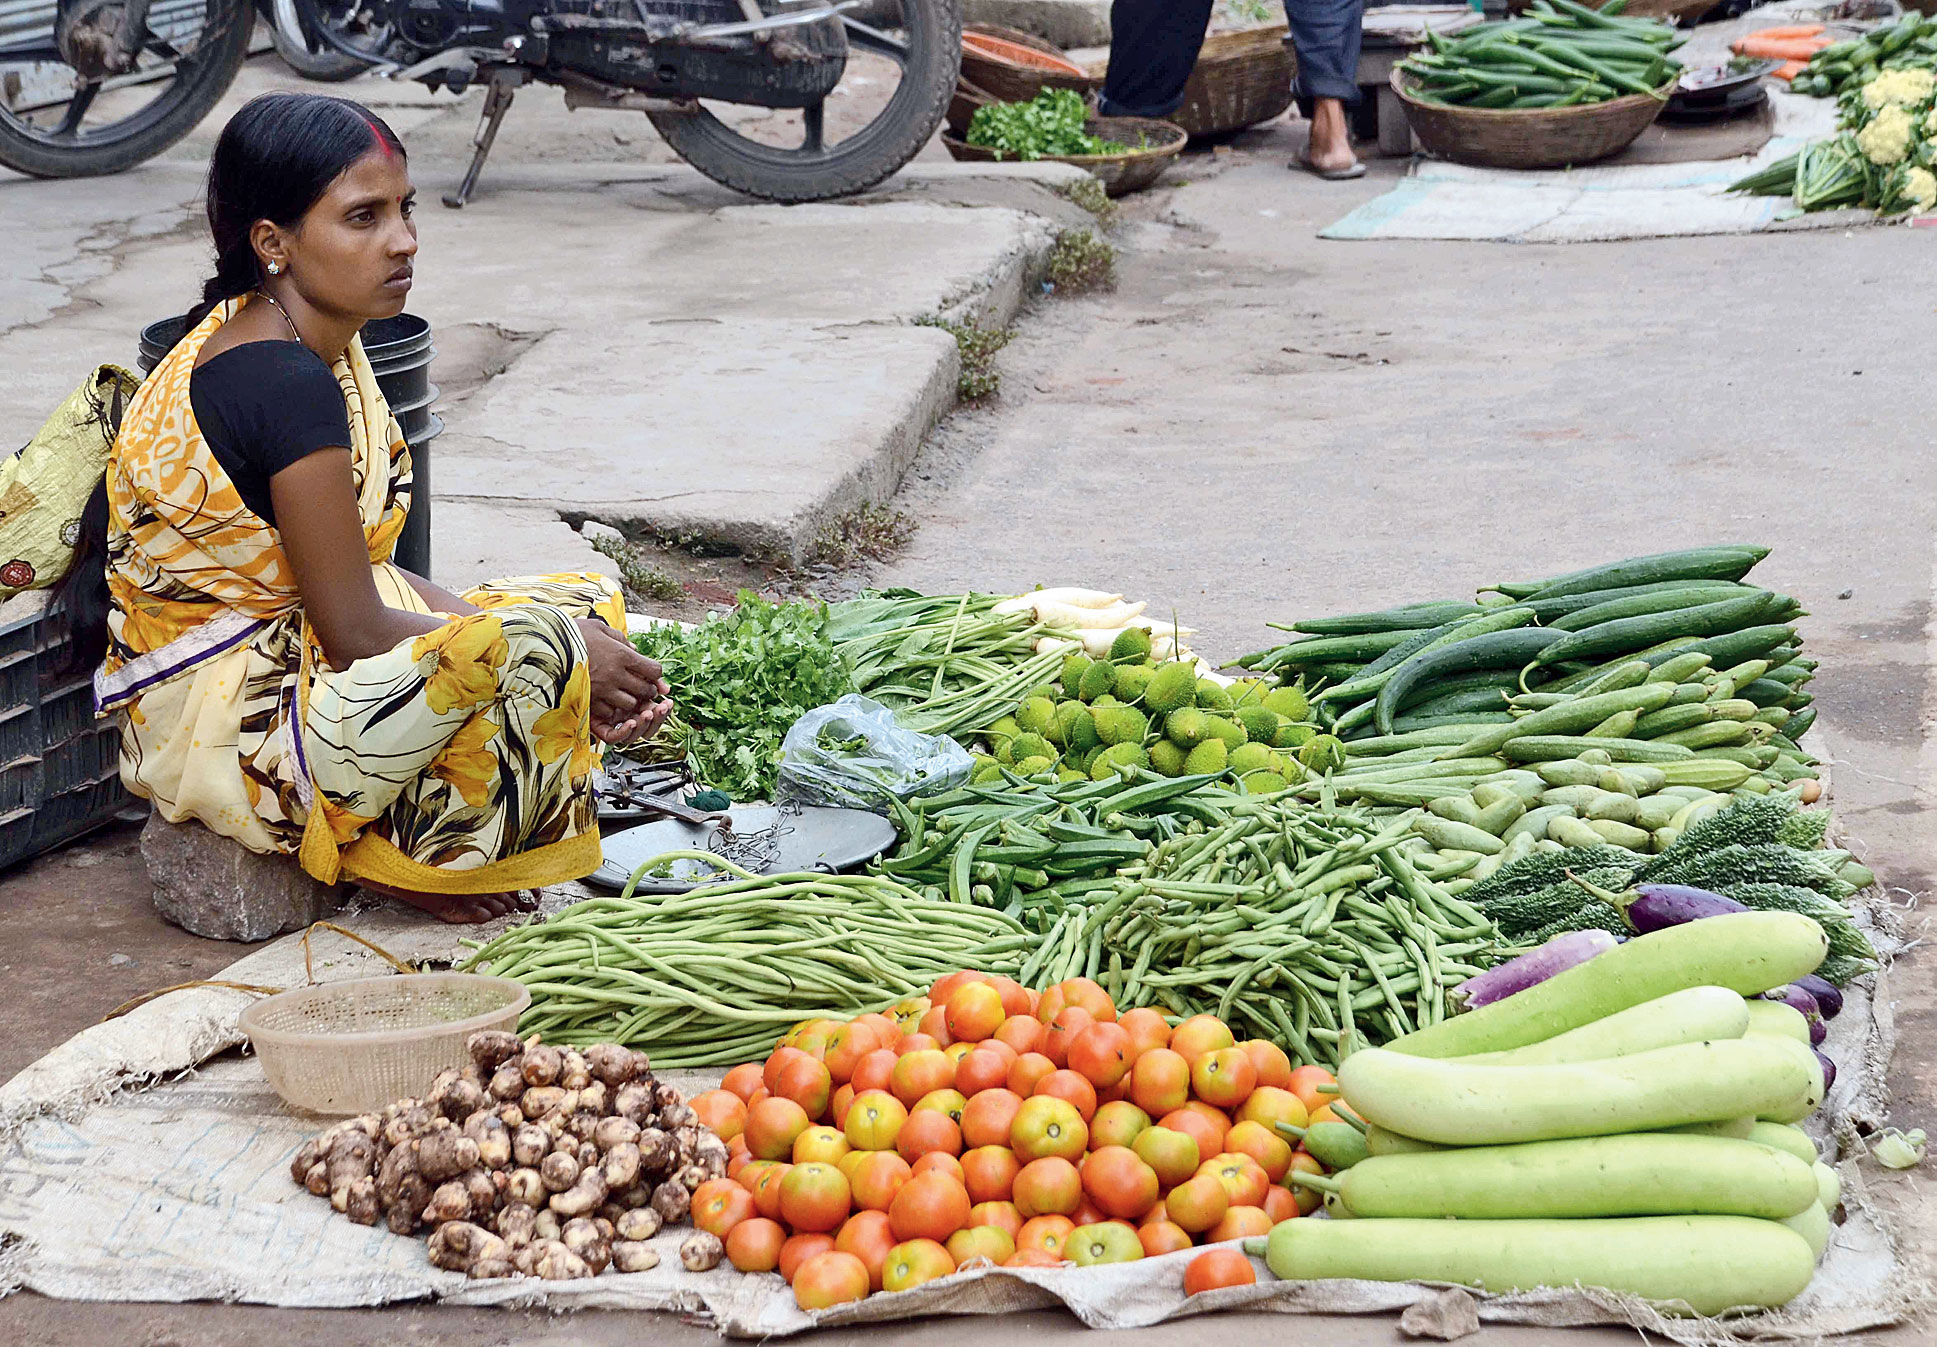 A woman sells vegetables at a market in Lalpur, Ranchi, on Wednesday.